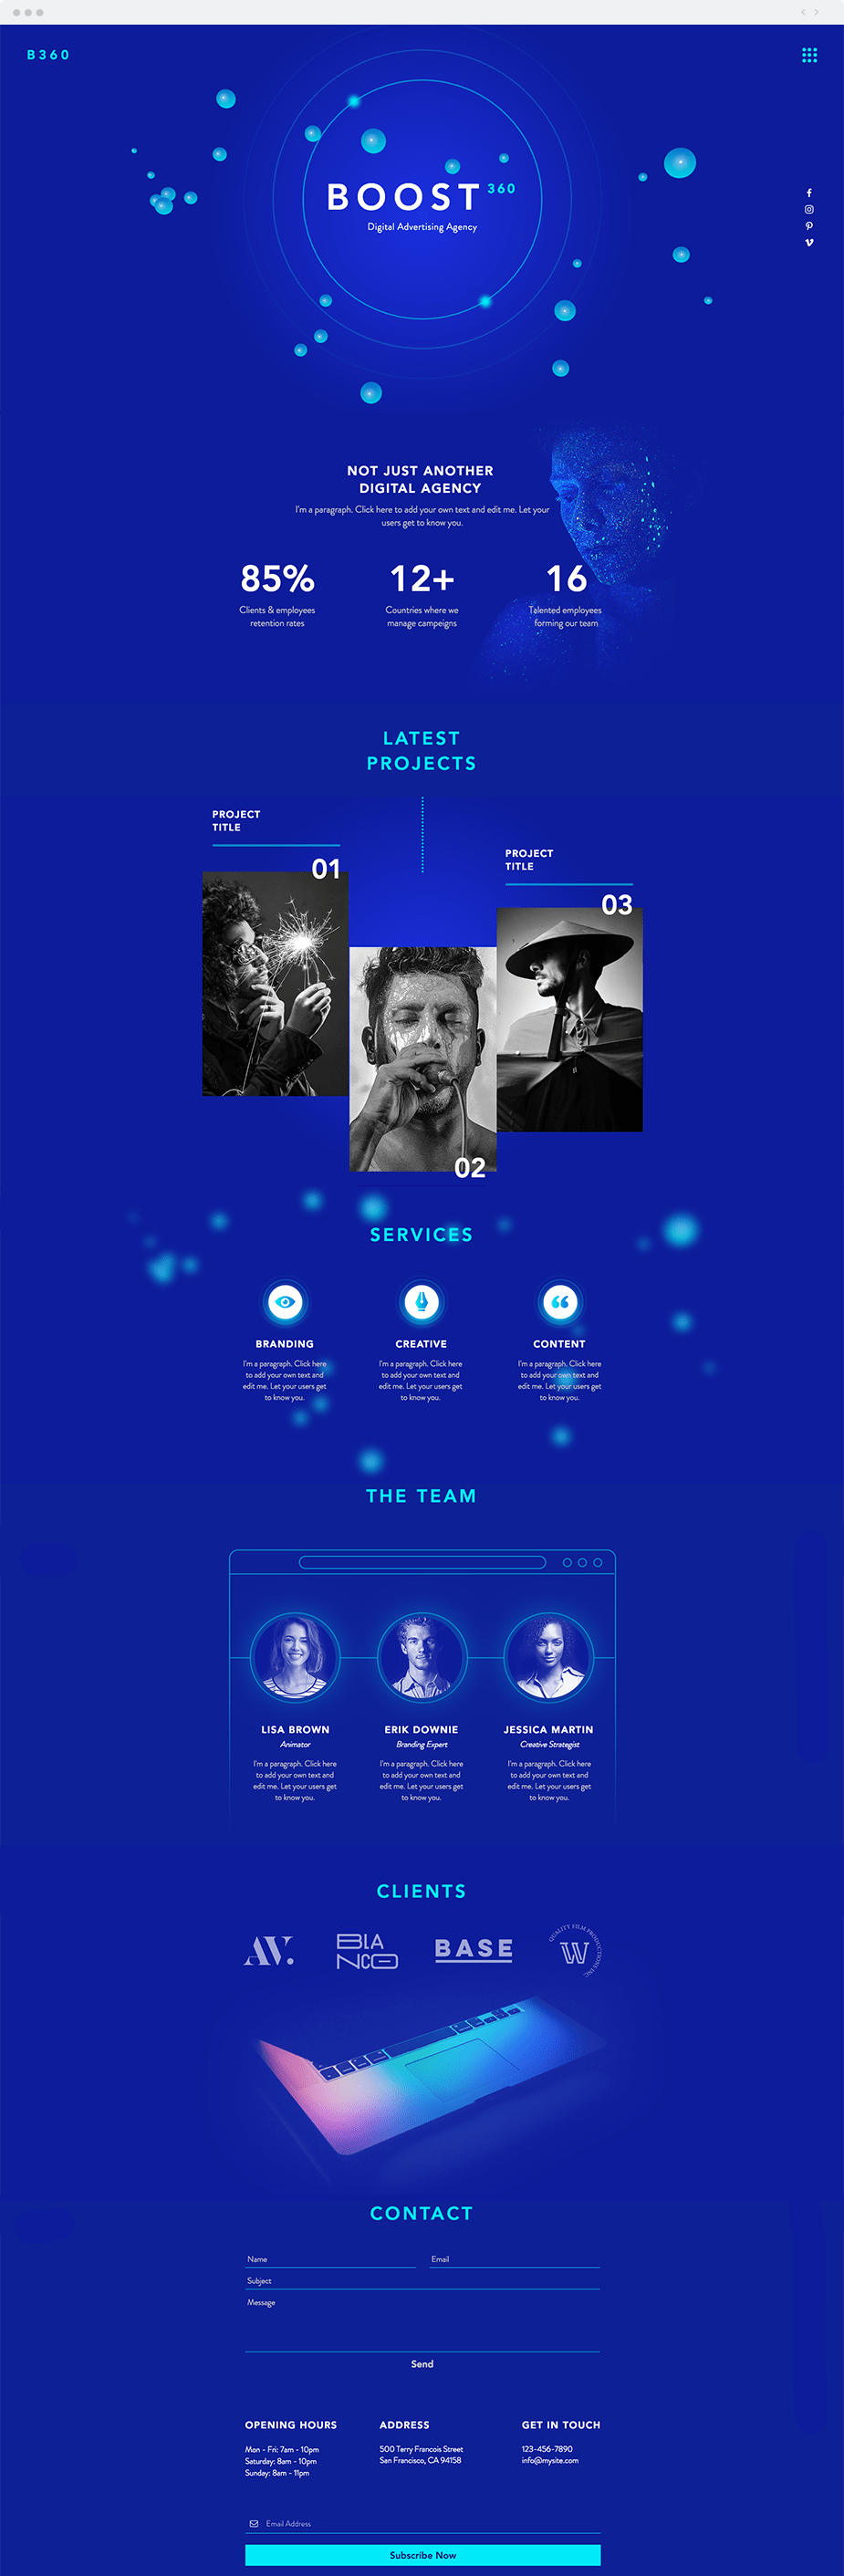 Wix Templates: Digital Advertising Agency